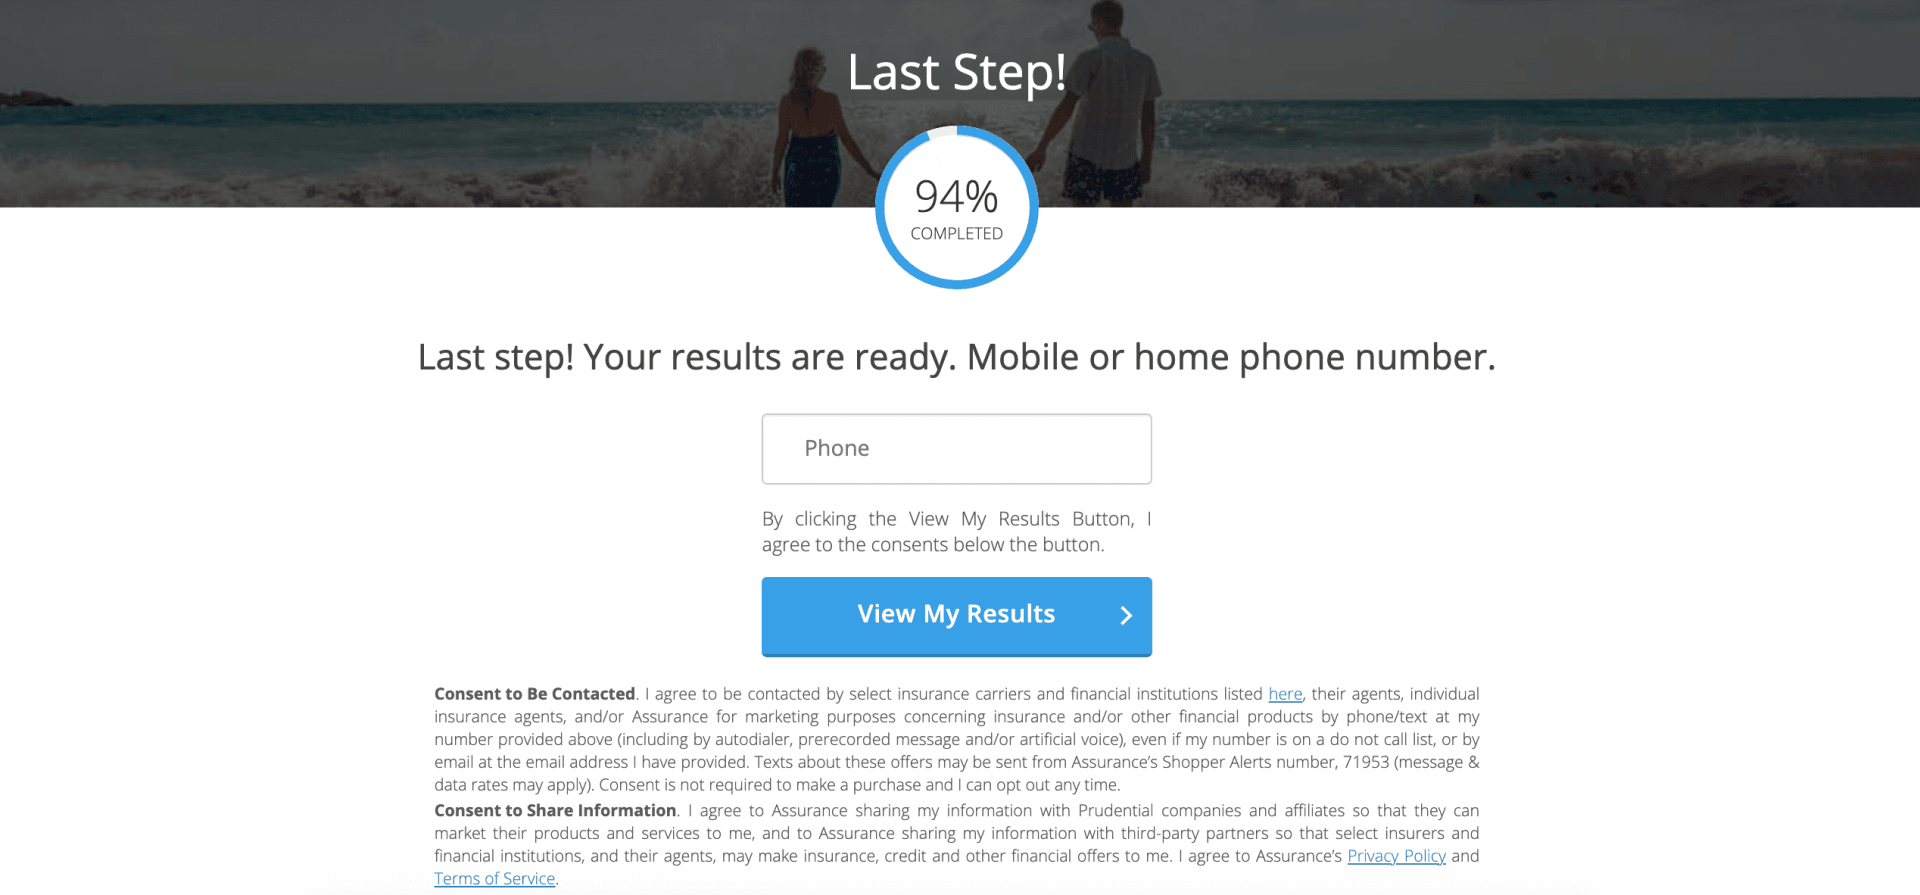 MedicarePlan.com Review: Help Finding Medicare Coverage Coverage The Easy Way - Telephone Number